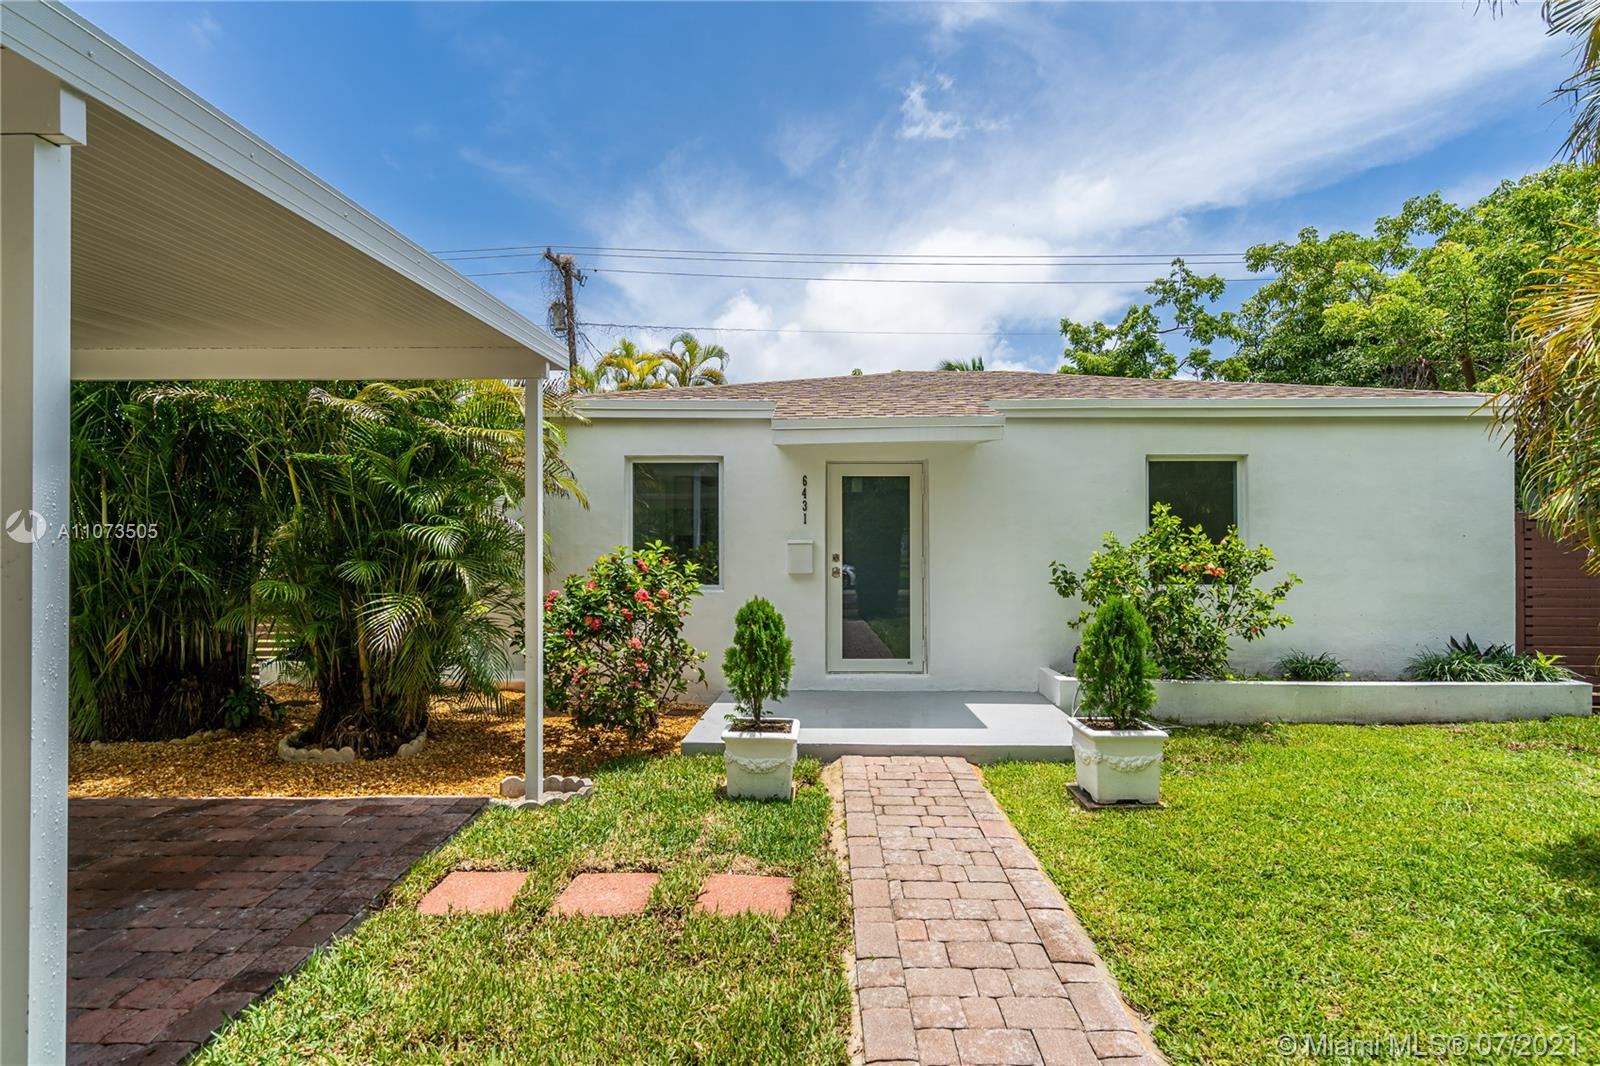 Tastefully updated home with a modern theme in the heart of South Miami. This bright sunlit home features 4 beds, 2 baths, with an open living/dining area, a renovated kitchen with quartz countertops, and Frigidaire Gallery SS appliances. Brand new light fixtures, porcelain tile floors and updated bathrooms. Home also features impact windows and doors, a brand new roof, new Samsung washer & dryer, fresh exterior & interior paint, and a large side yard for boat or RV with a new fence. Minutes from great schools including Sunset Elementary, Ponce Middle, and Coral Gables High. University of Miami is 5 minutes away, South Miami Hospital 10 minutes away. Close to Whole Foods, major highways, banks, parks, and restaurants. Minutes from the Shops at Sunset Place. All work done with permits.